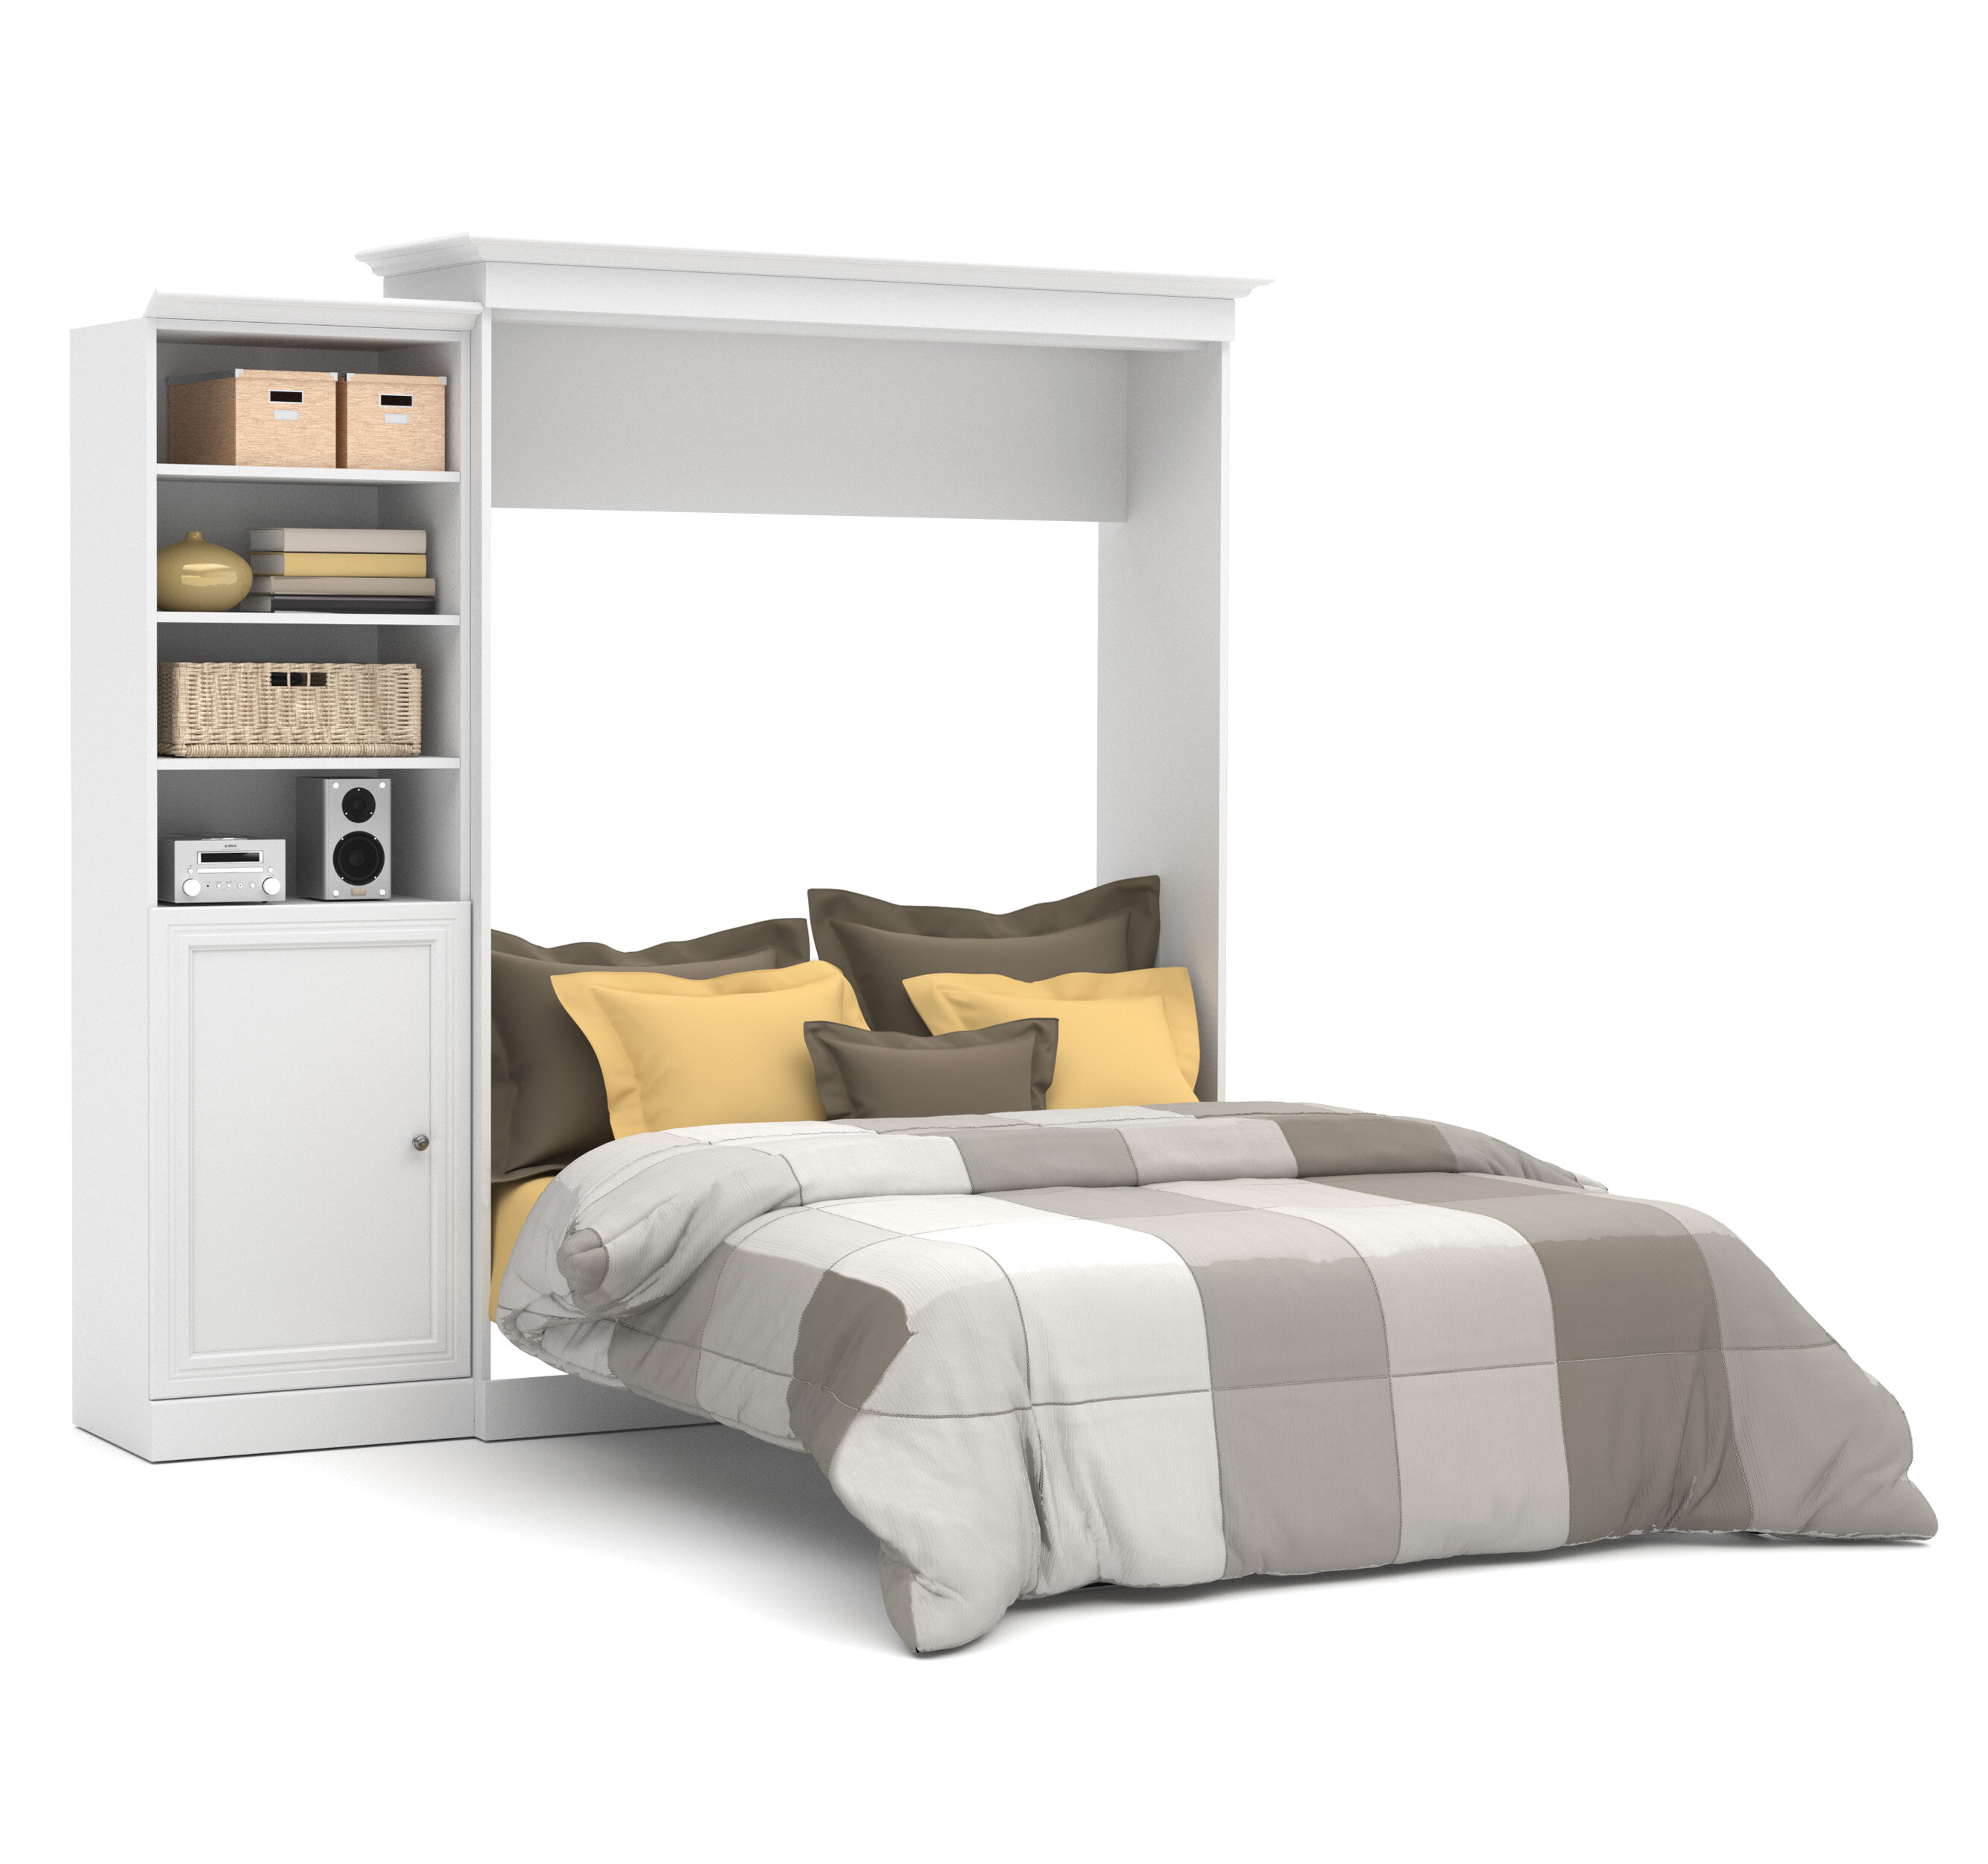 ana bed projects furniture white murphy diy queen